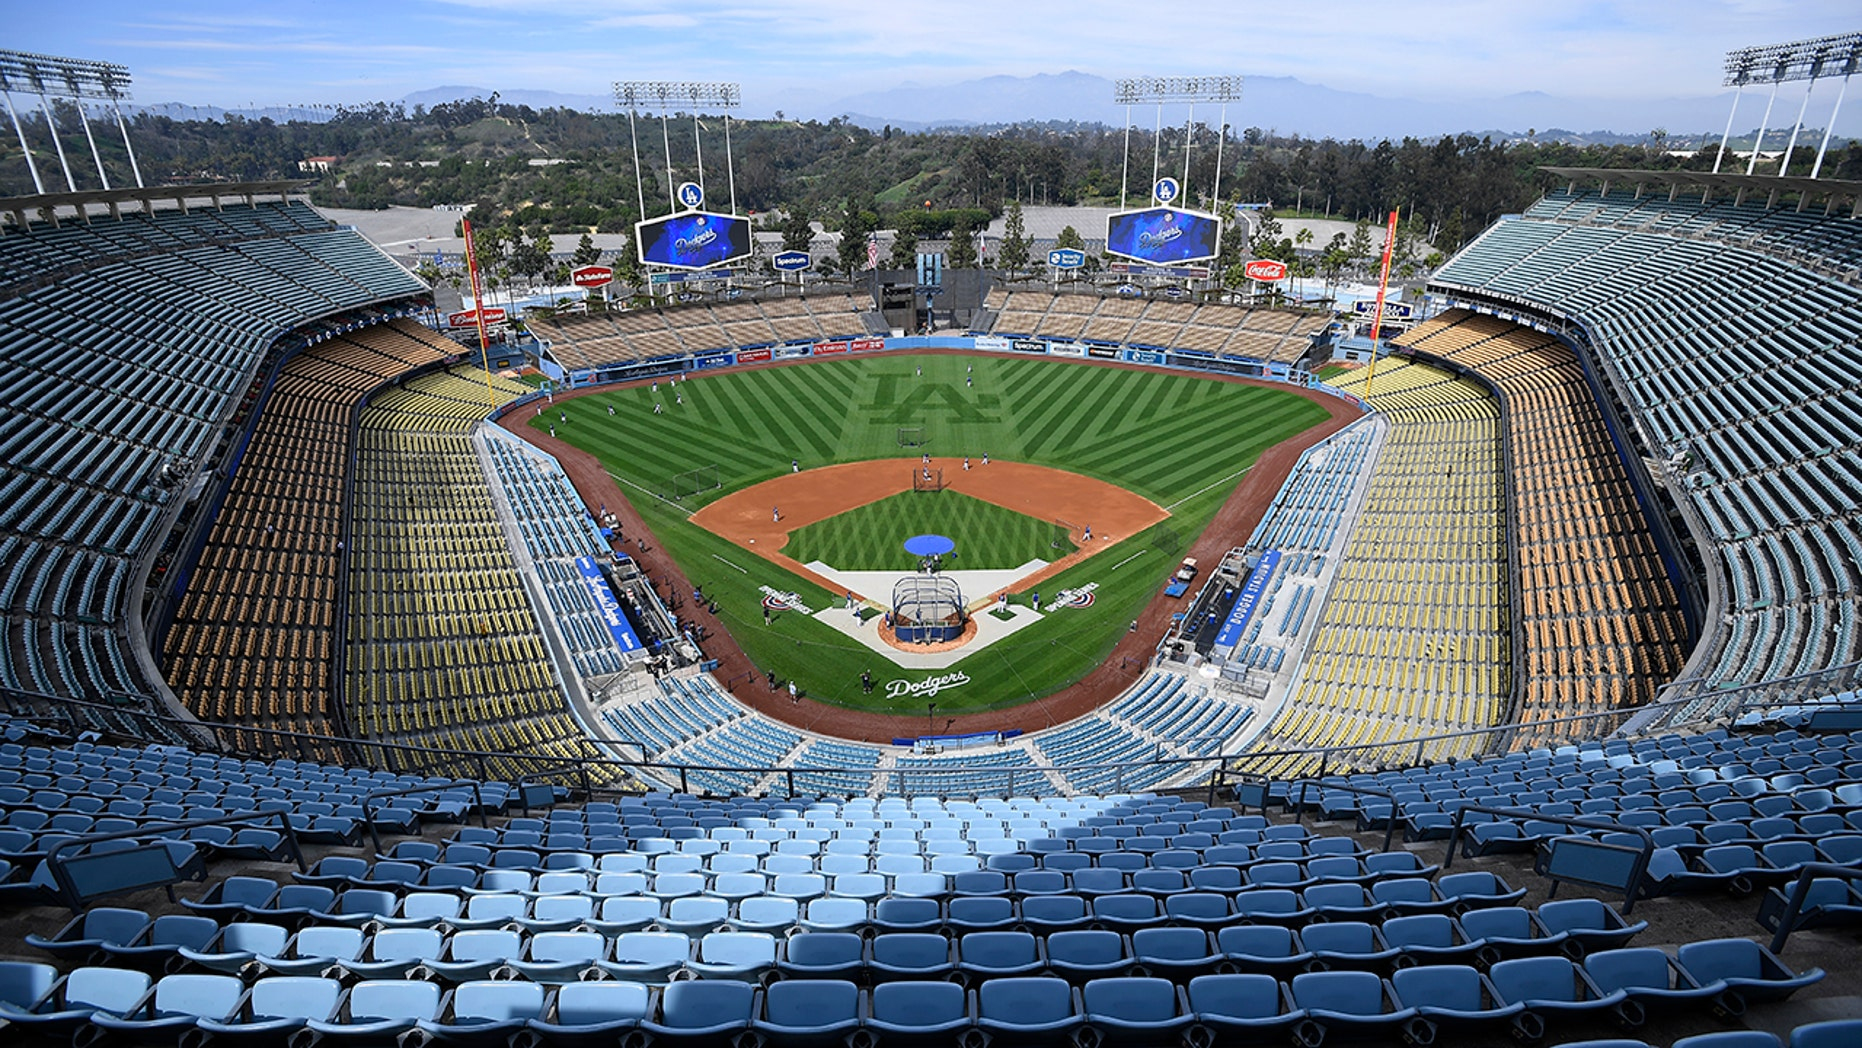 Dodgers fan hit by foul ball died from injuries, coroner's report says